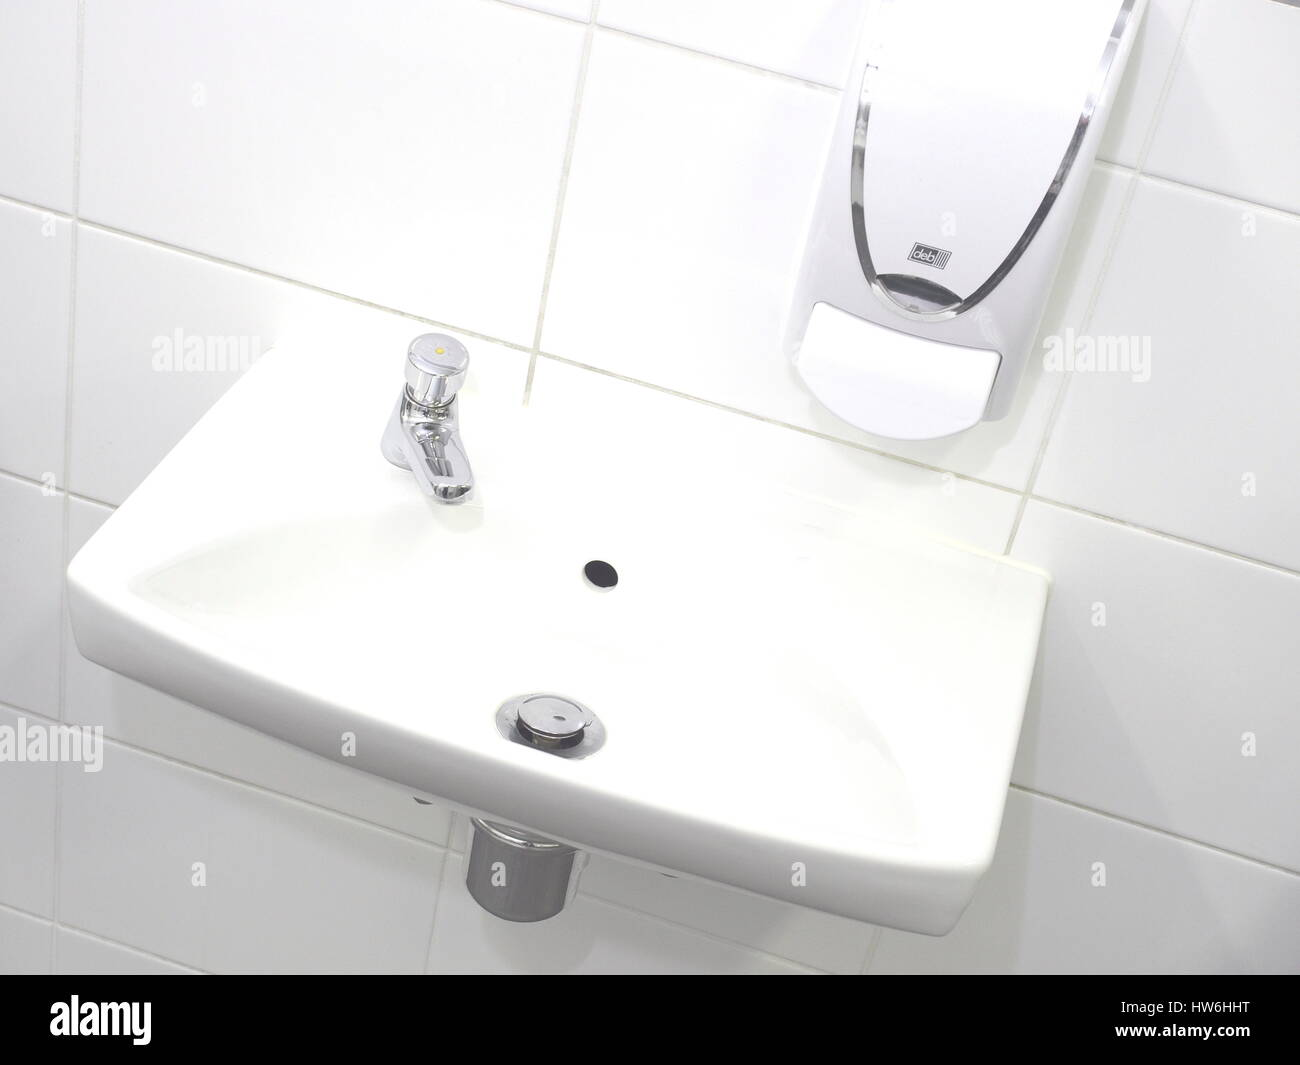 Melbourne, Australia, 2015, August 7: Hand wash basin and spout in a pristine industrial lavatory - Stock Image